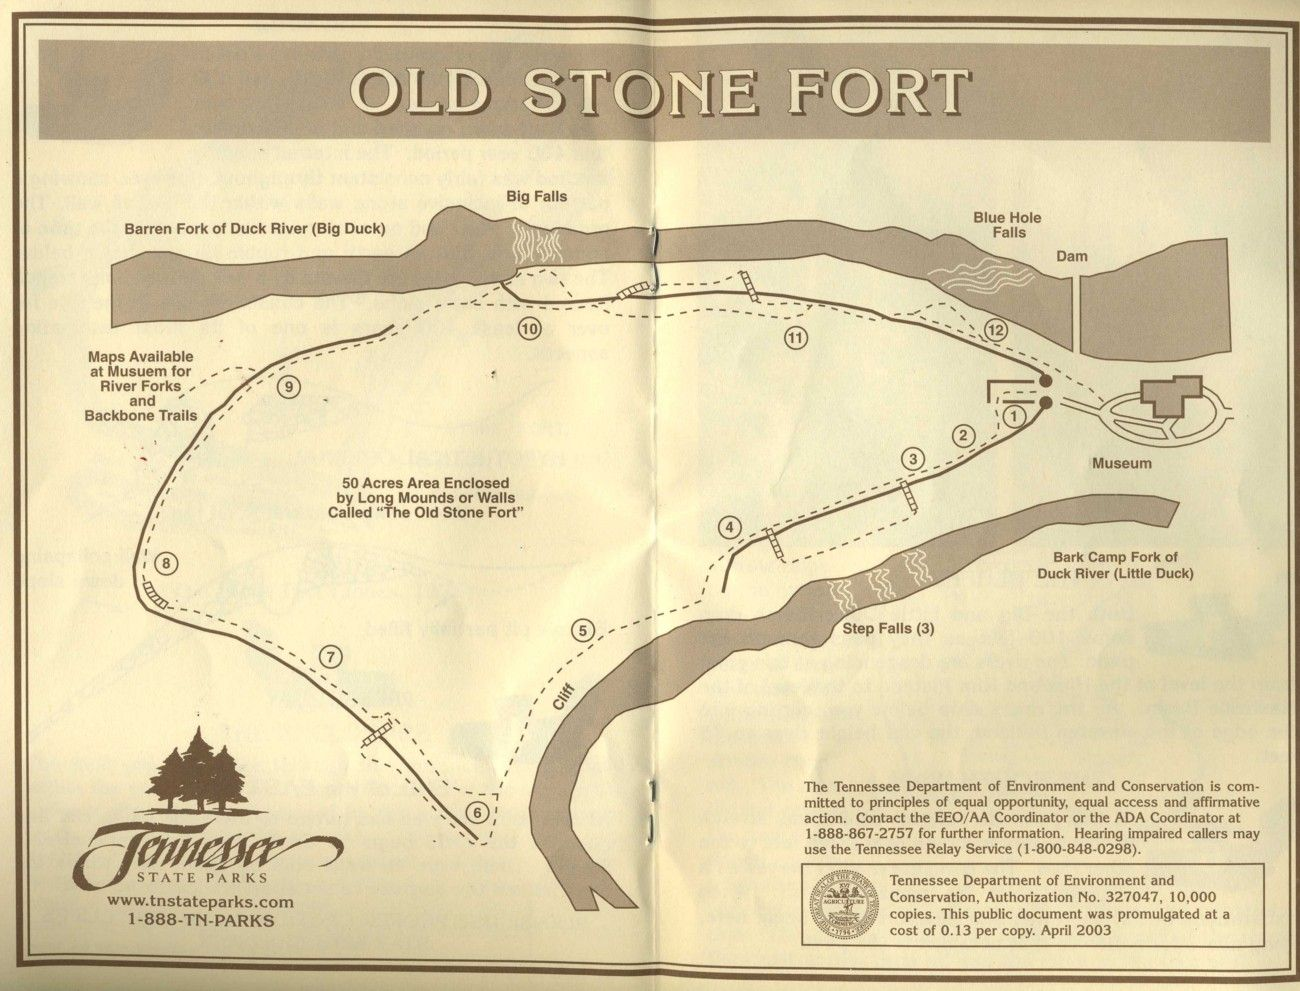 Map Of Old Stone Fort Archeological Area Inmanchester